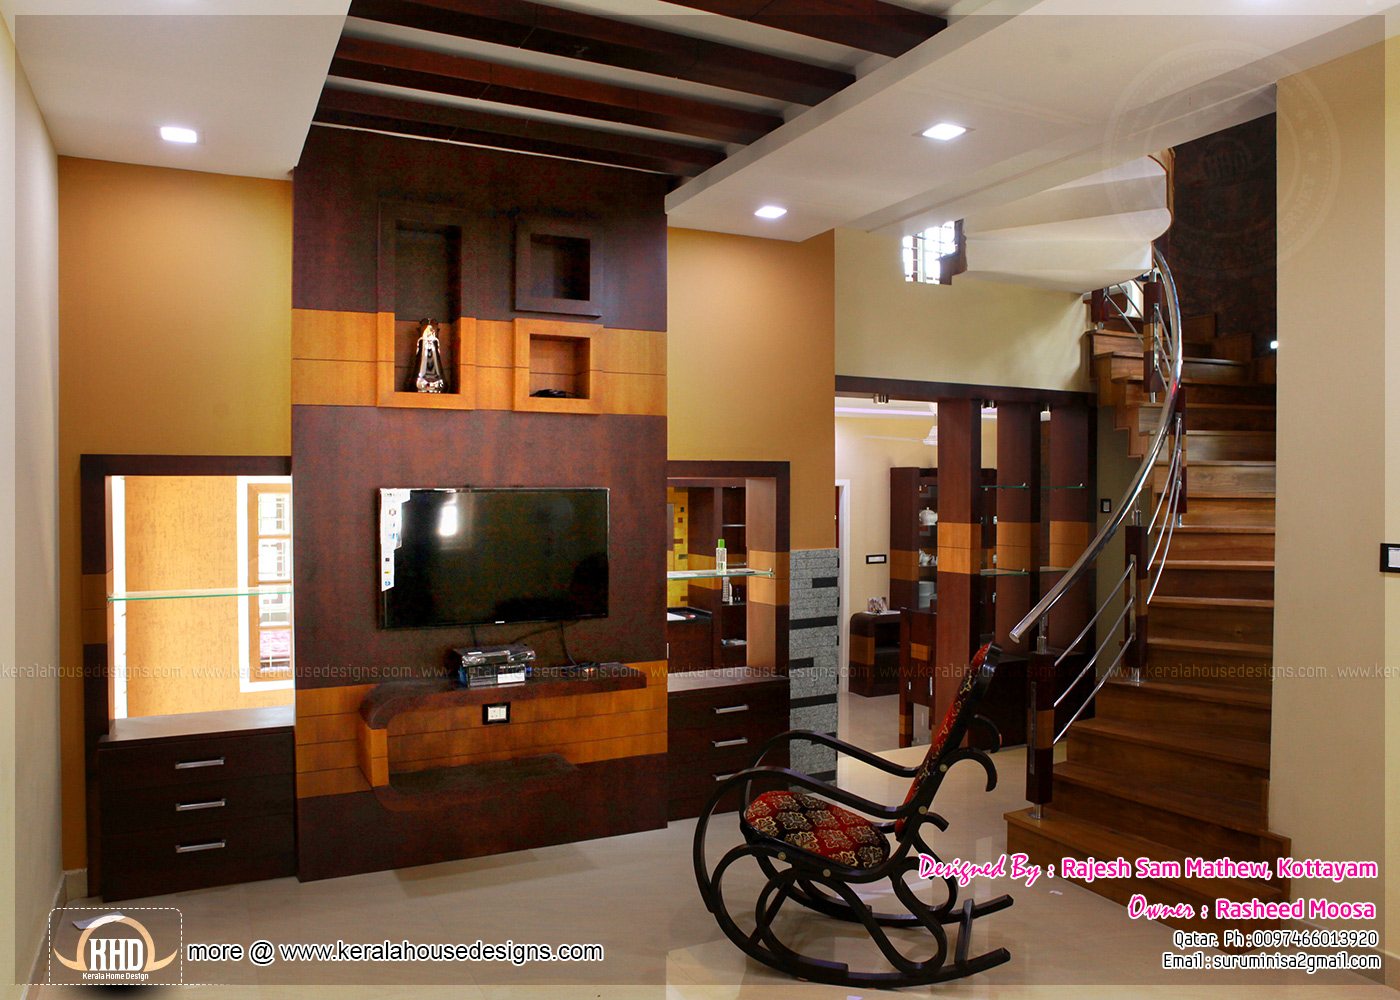 Kerala interior design with photos kerala home design for House interior design photos